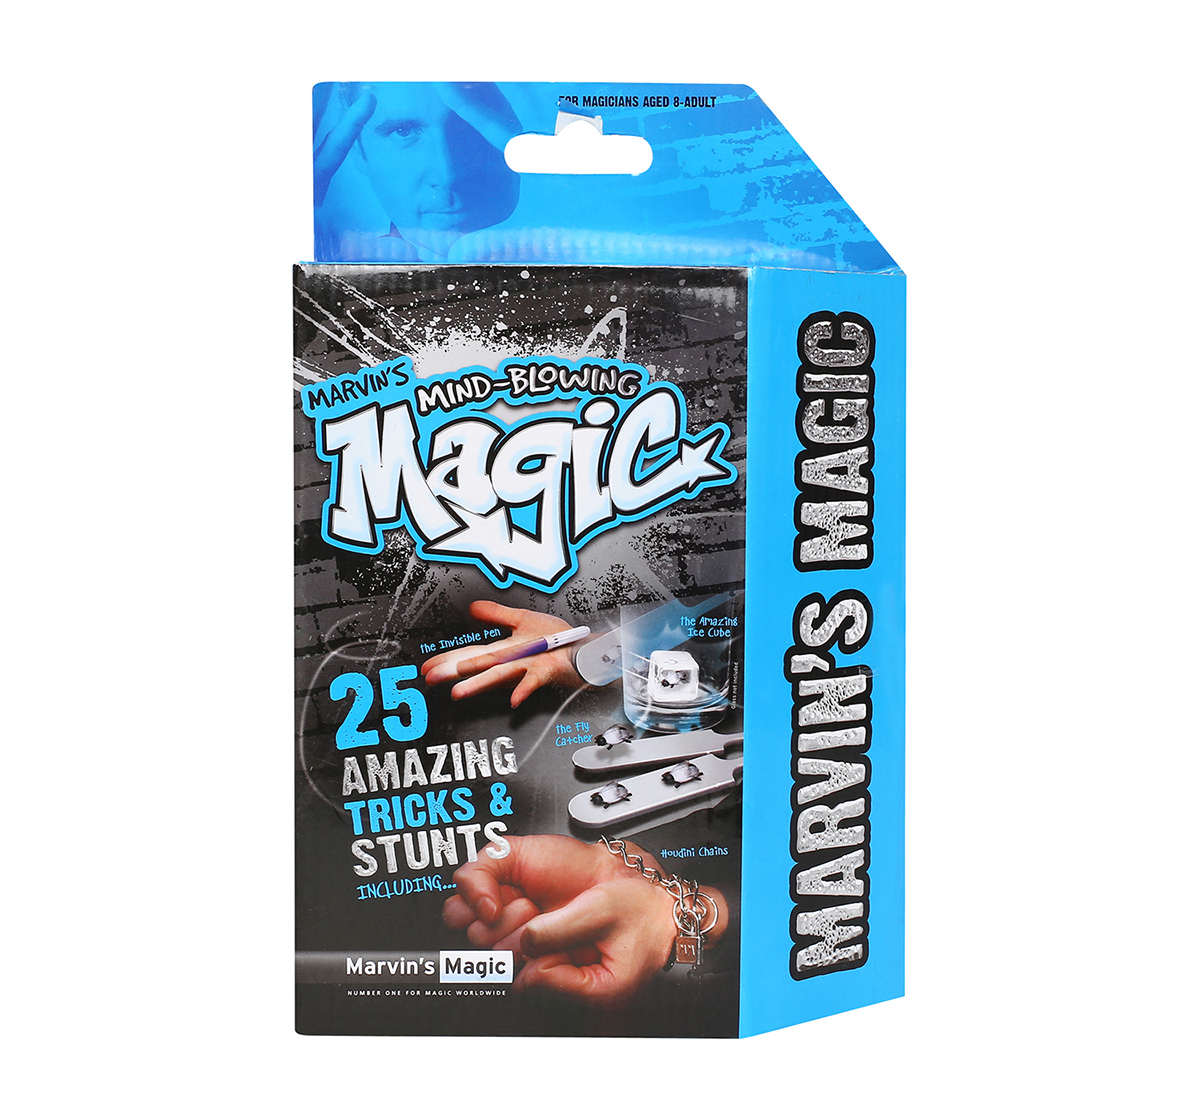 Marvin's Magic | Marvin'S Magic 25 Amazing Tricks And Stunts Impulse Toys for Kids age 8Y+